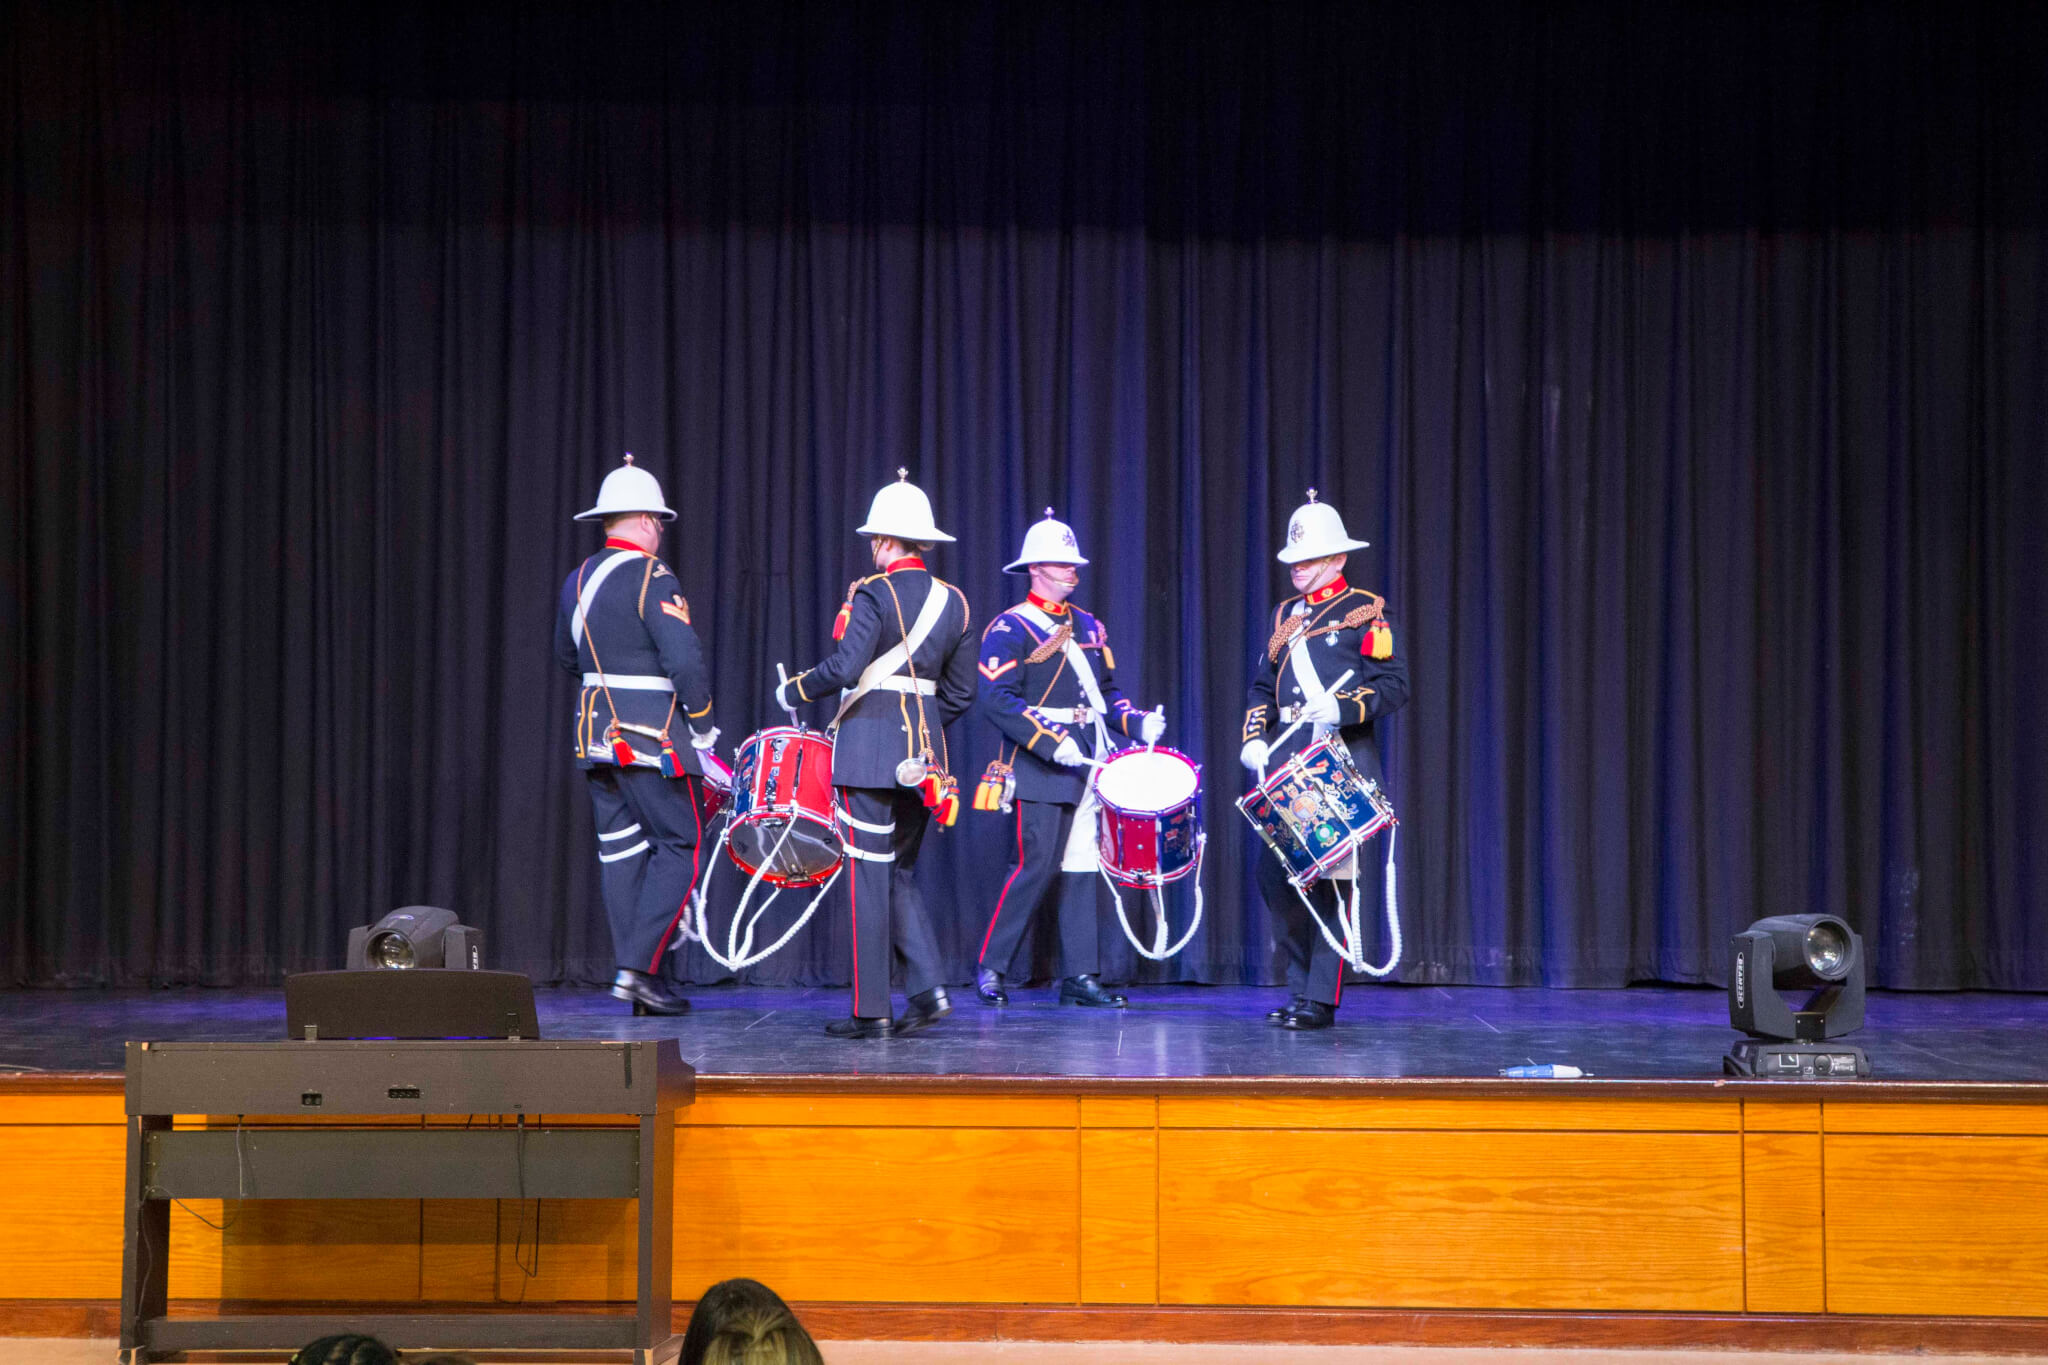 Royal_Marines_Band_Visit_045